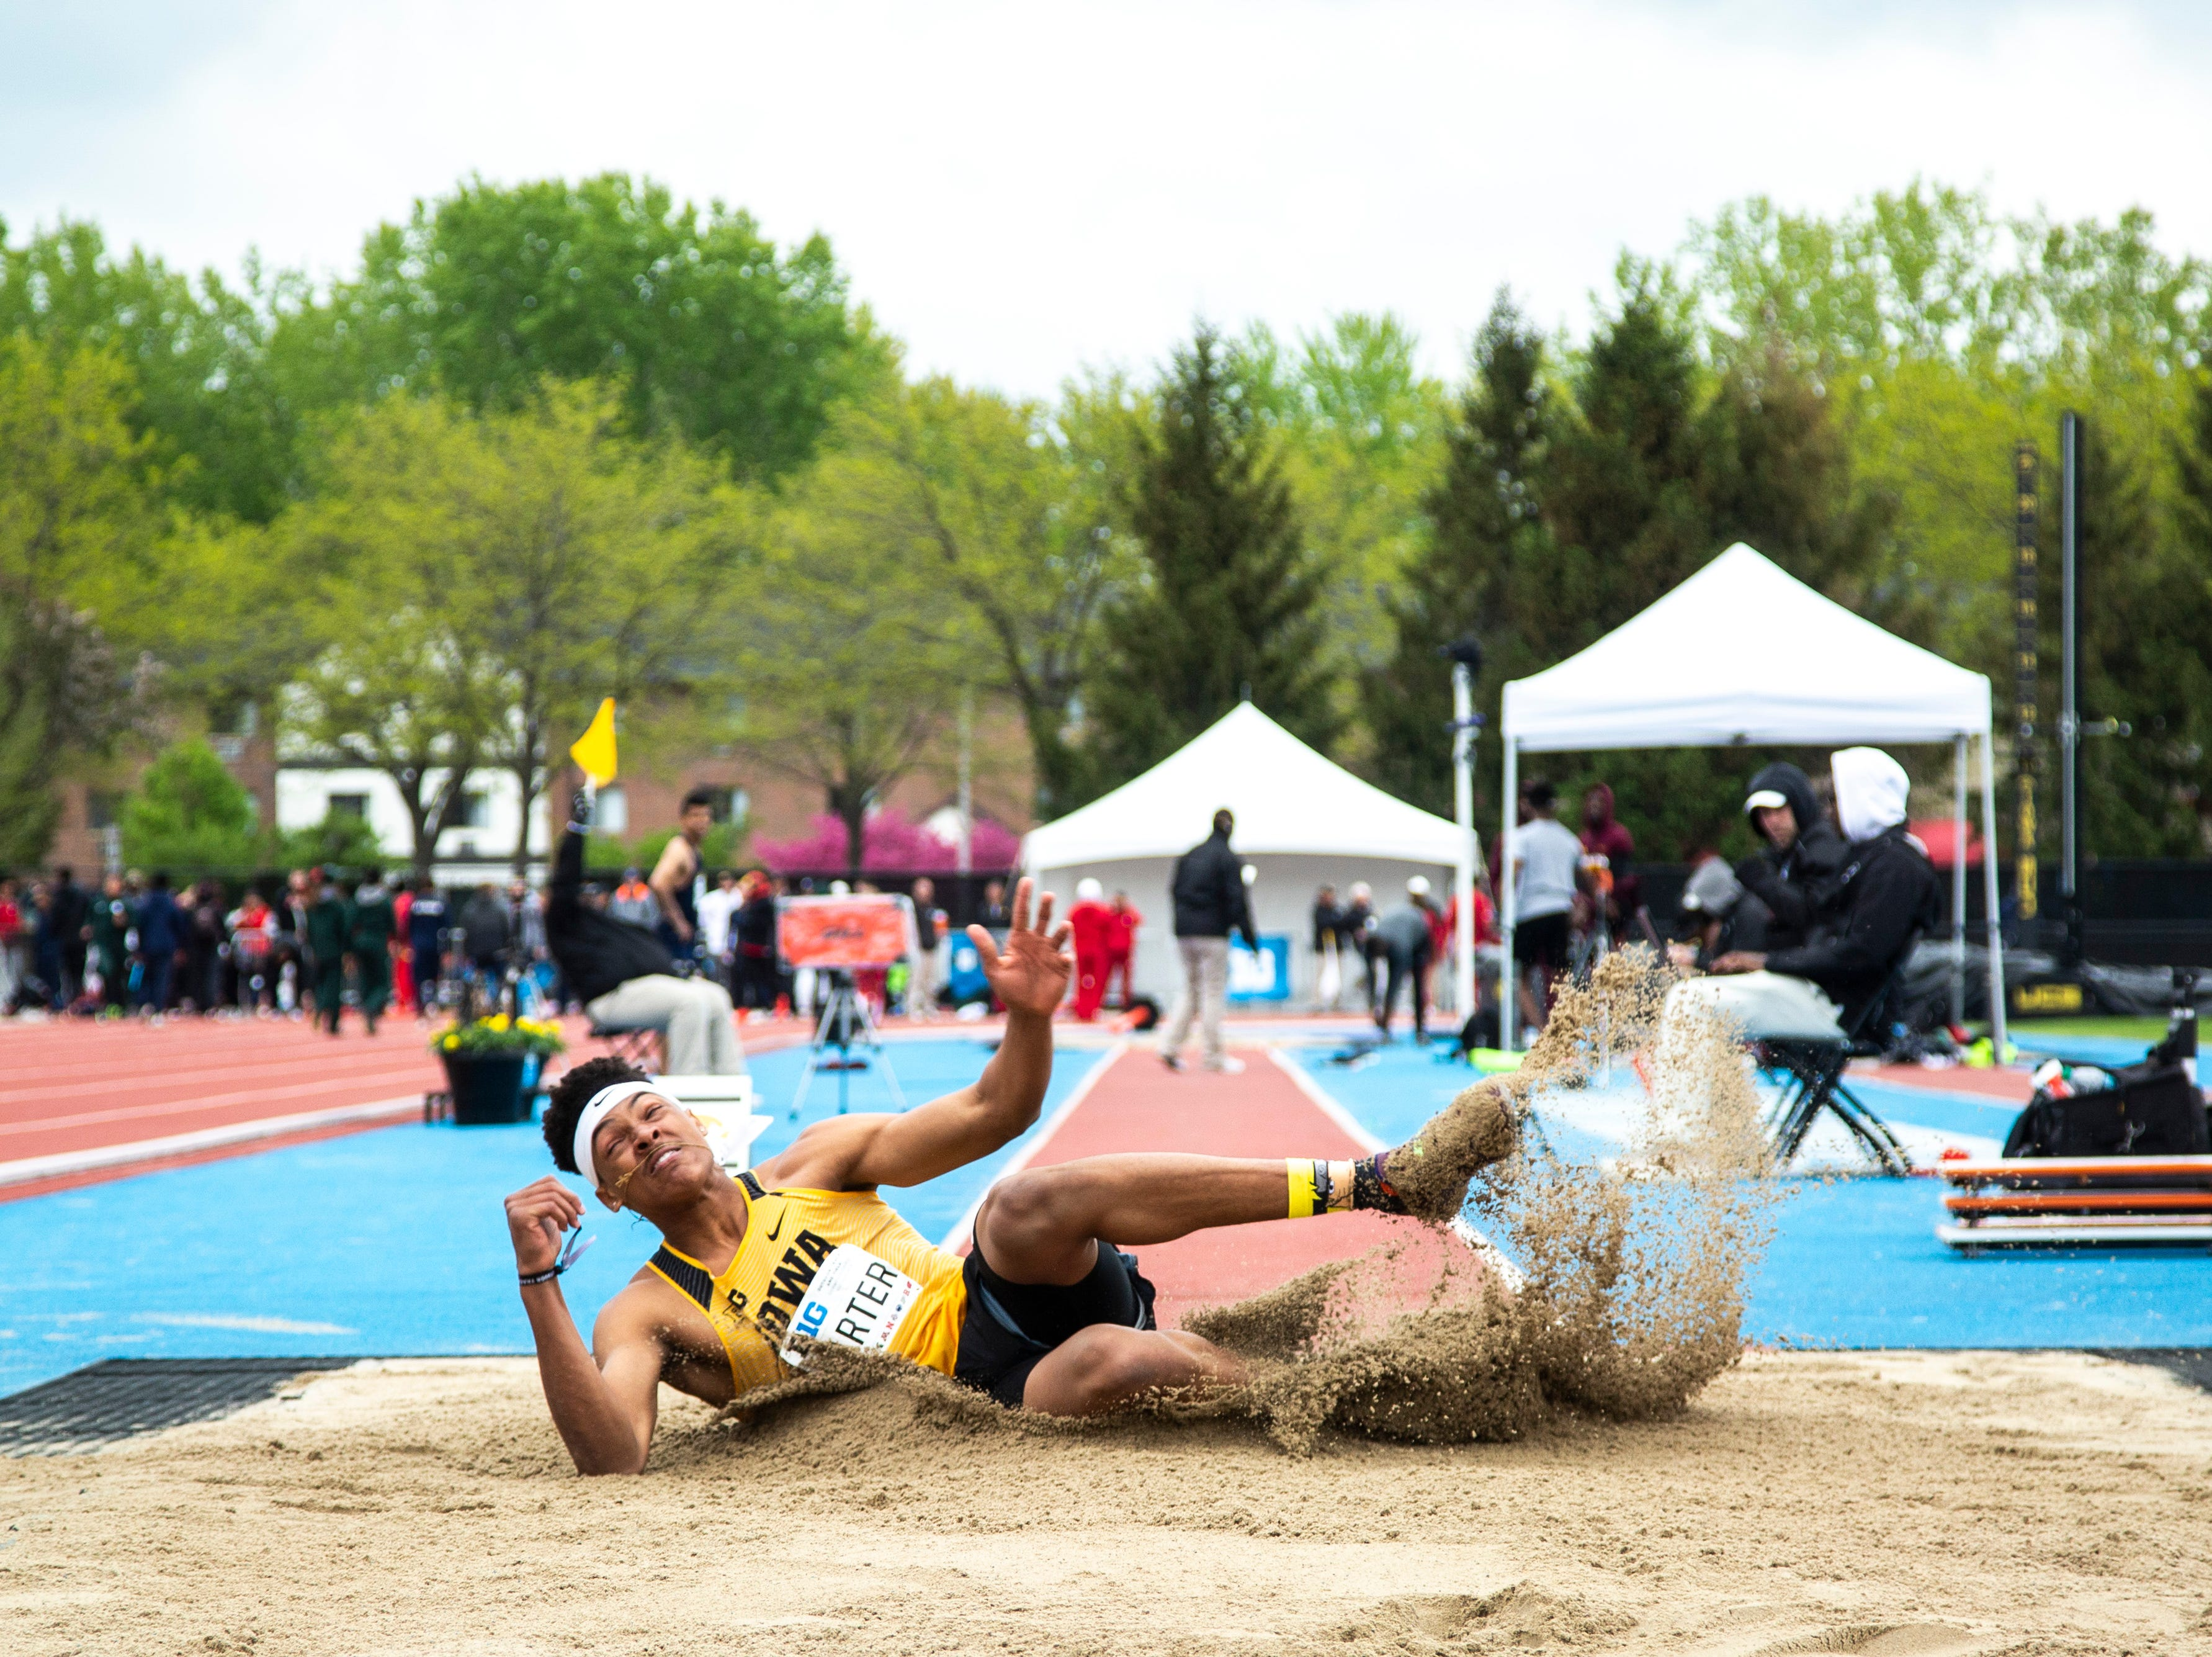 Iowa freshman James Carter competes in triple jump during the final day of Big Ten track and field outdoor championships, Sunday, May 12, 2019, at Francis X. Cretzmeyer Track on the University of Iowa campus in Iowa City, Iowa.